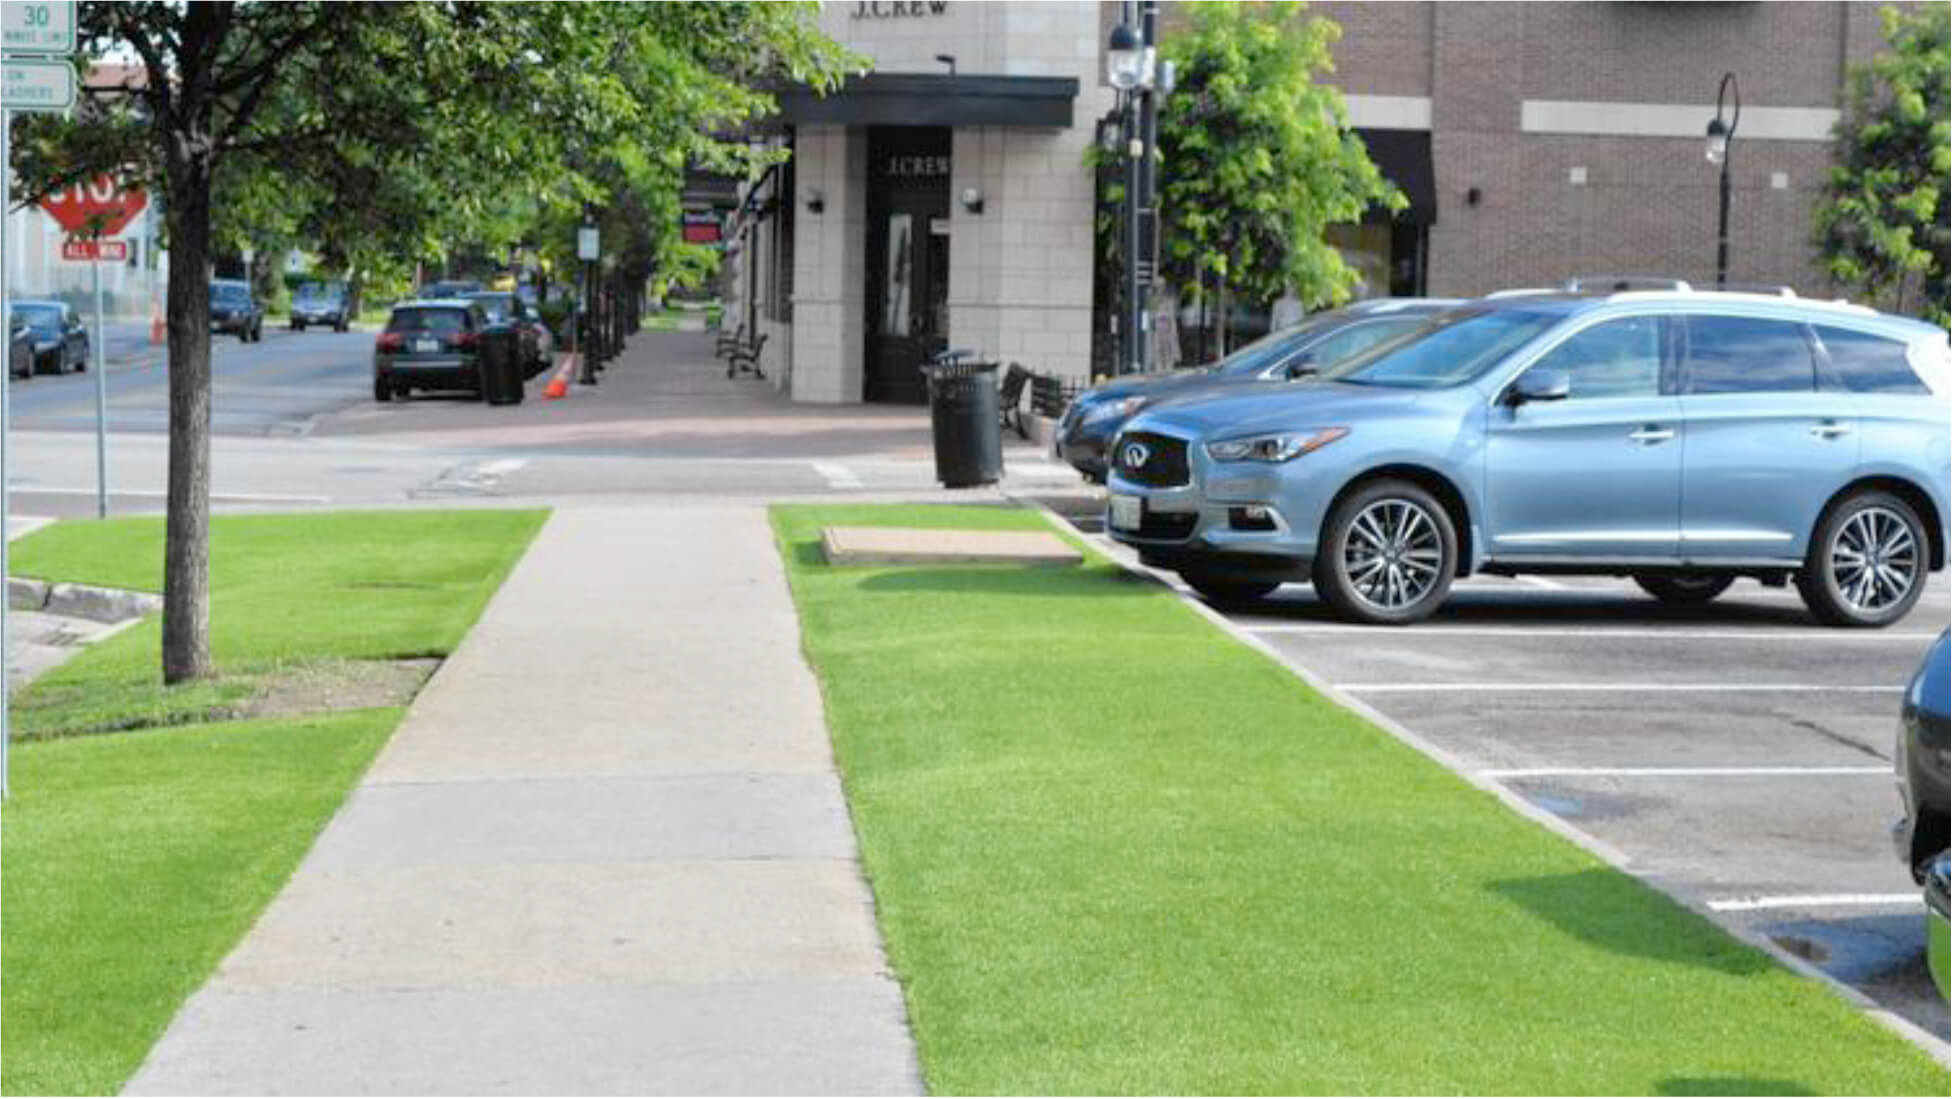 City of Naperville artificial grass next to parking lot